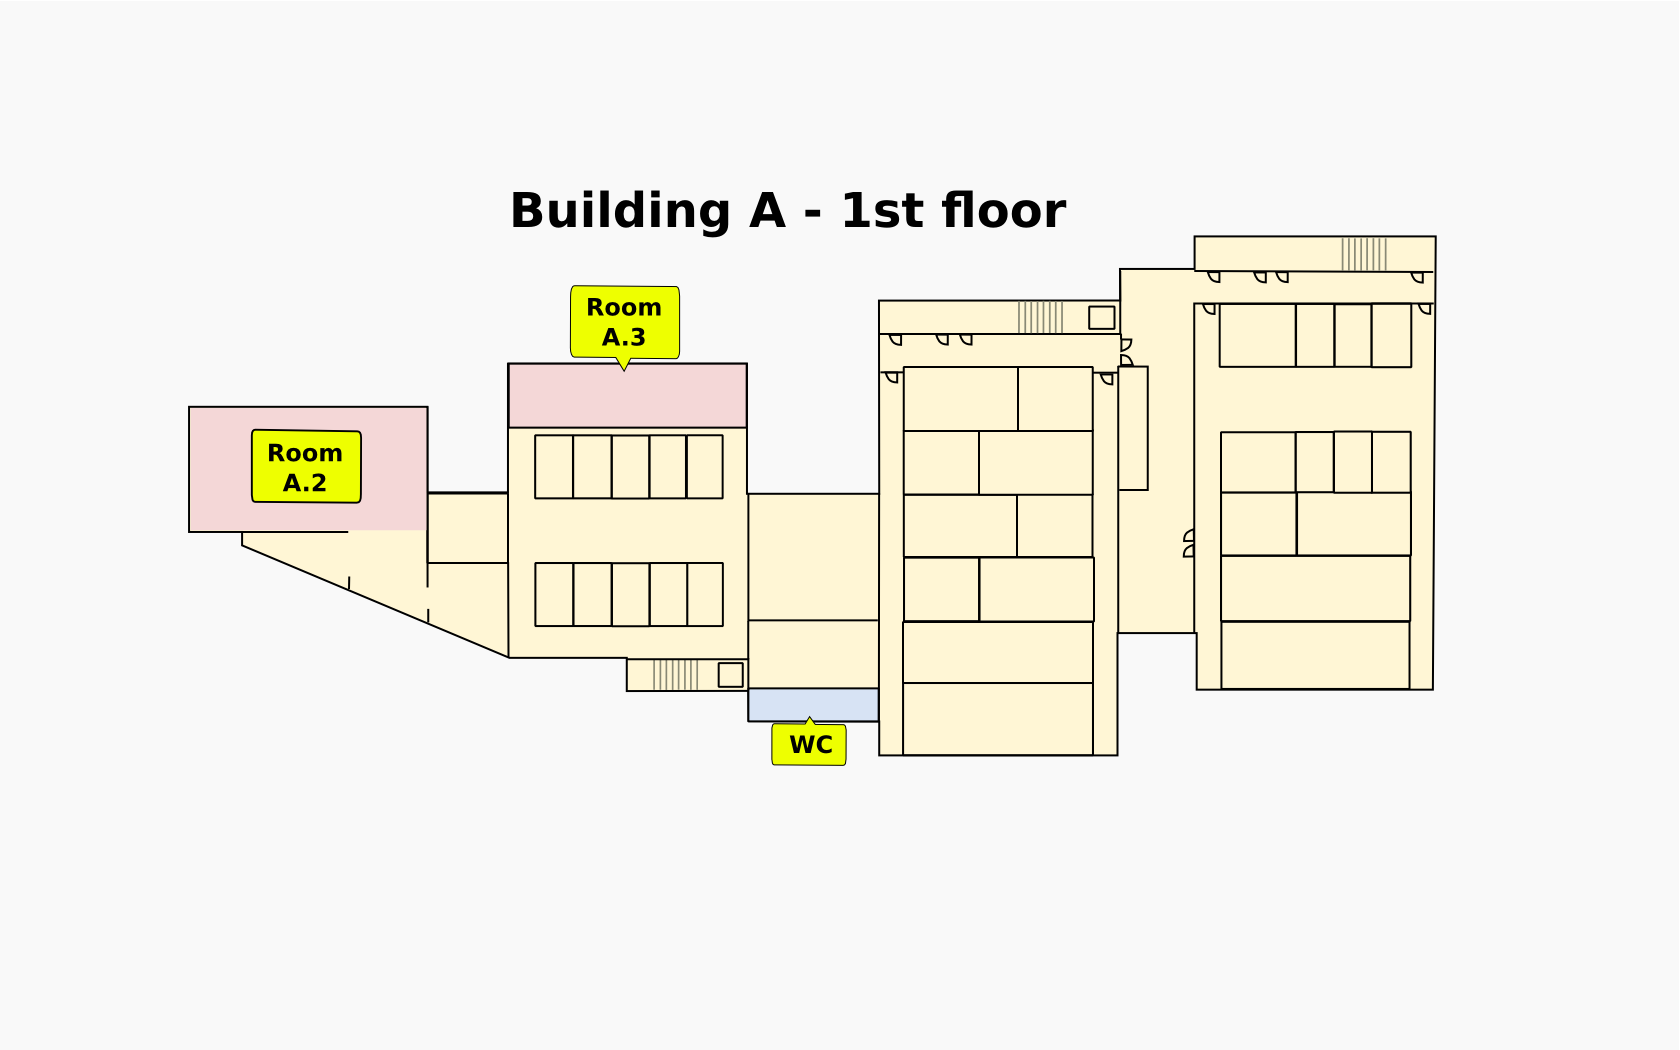 A building, 1st floor